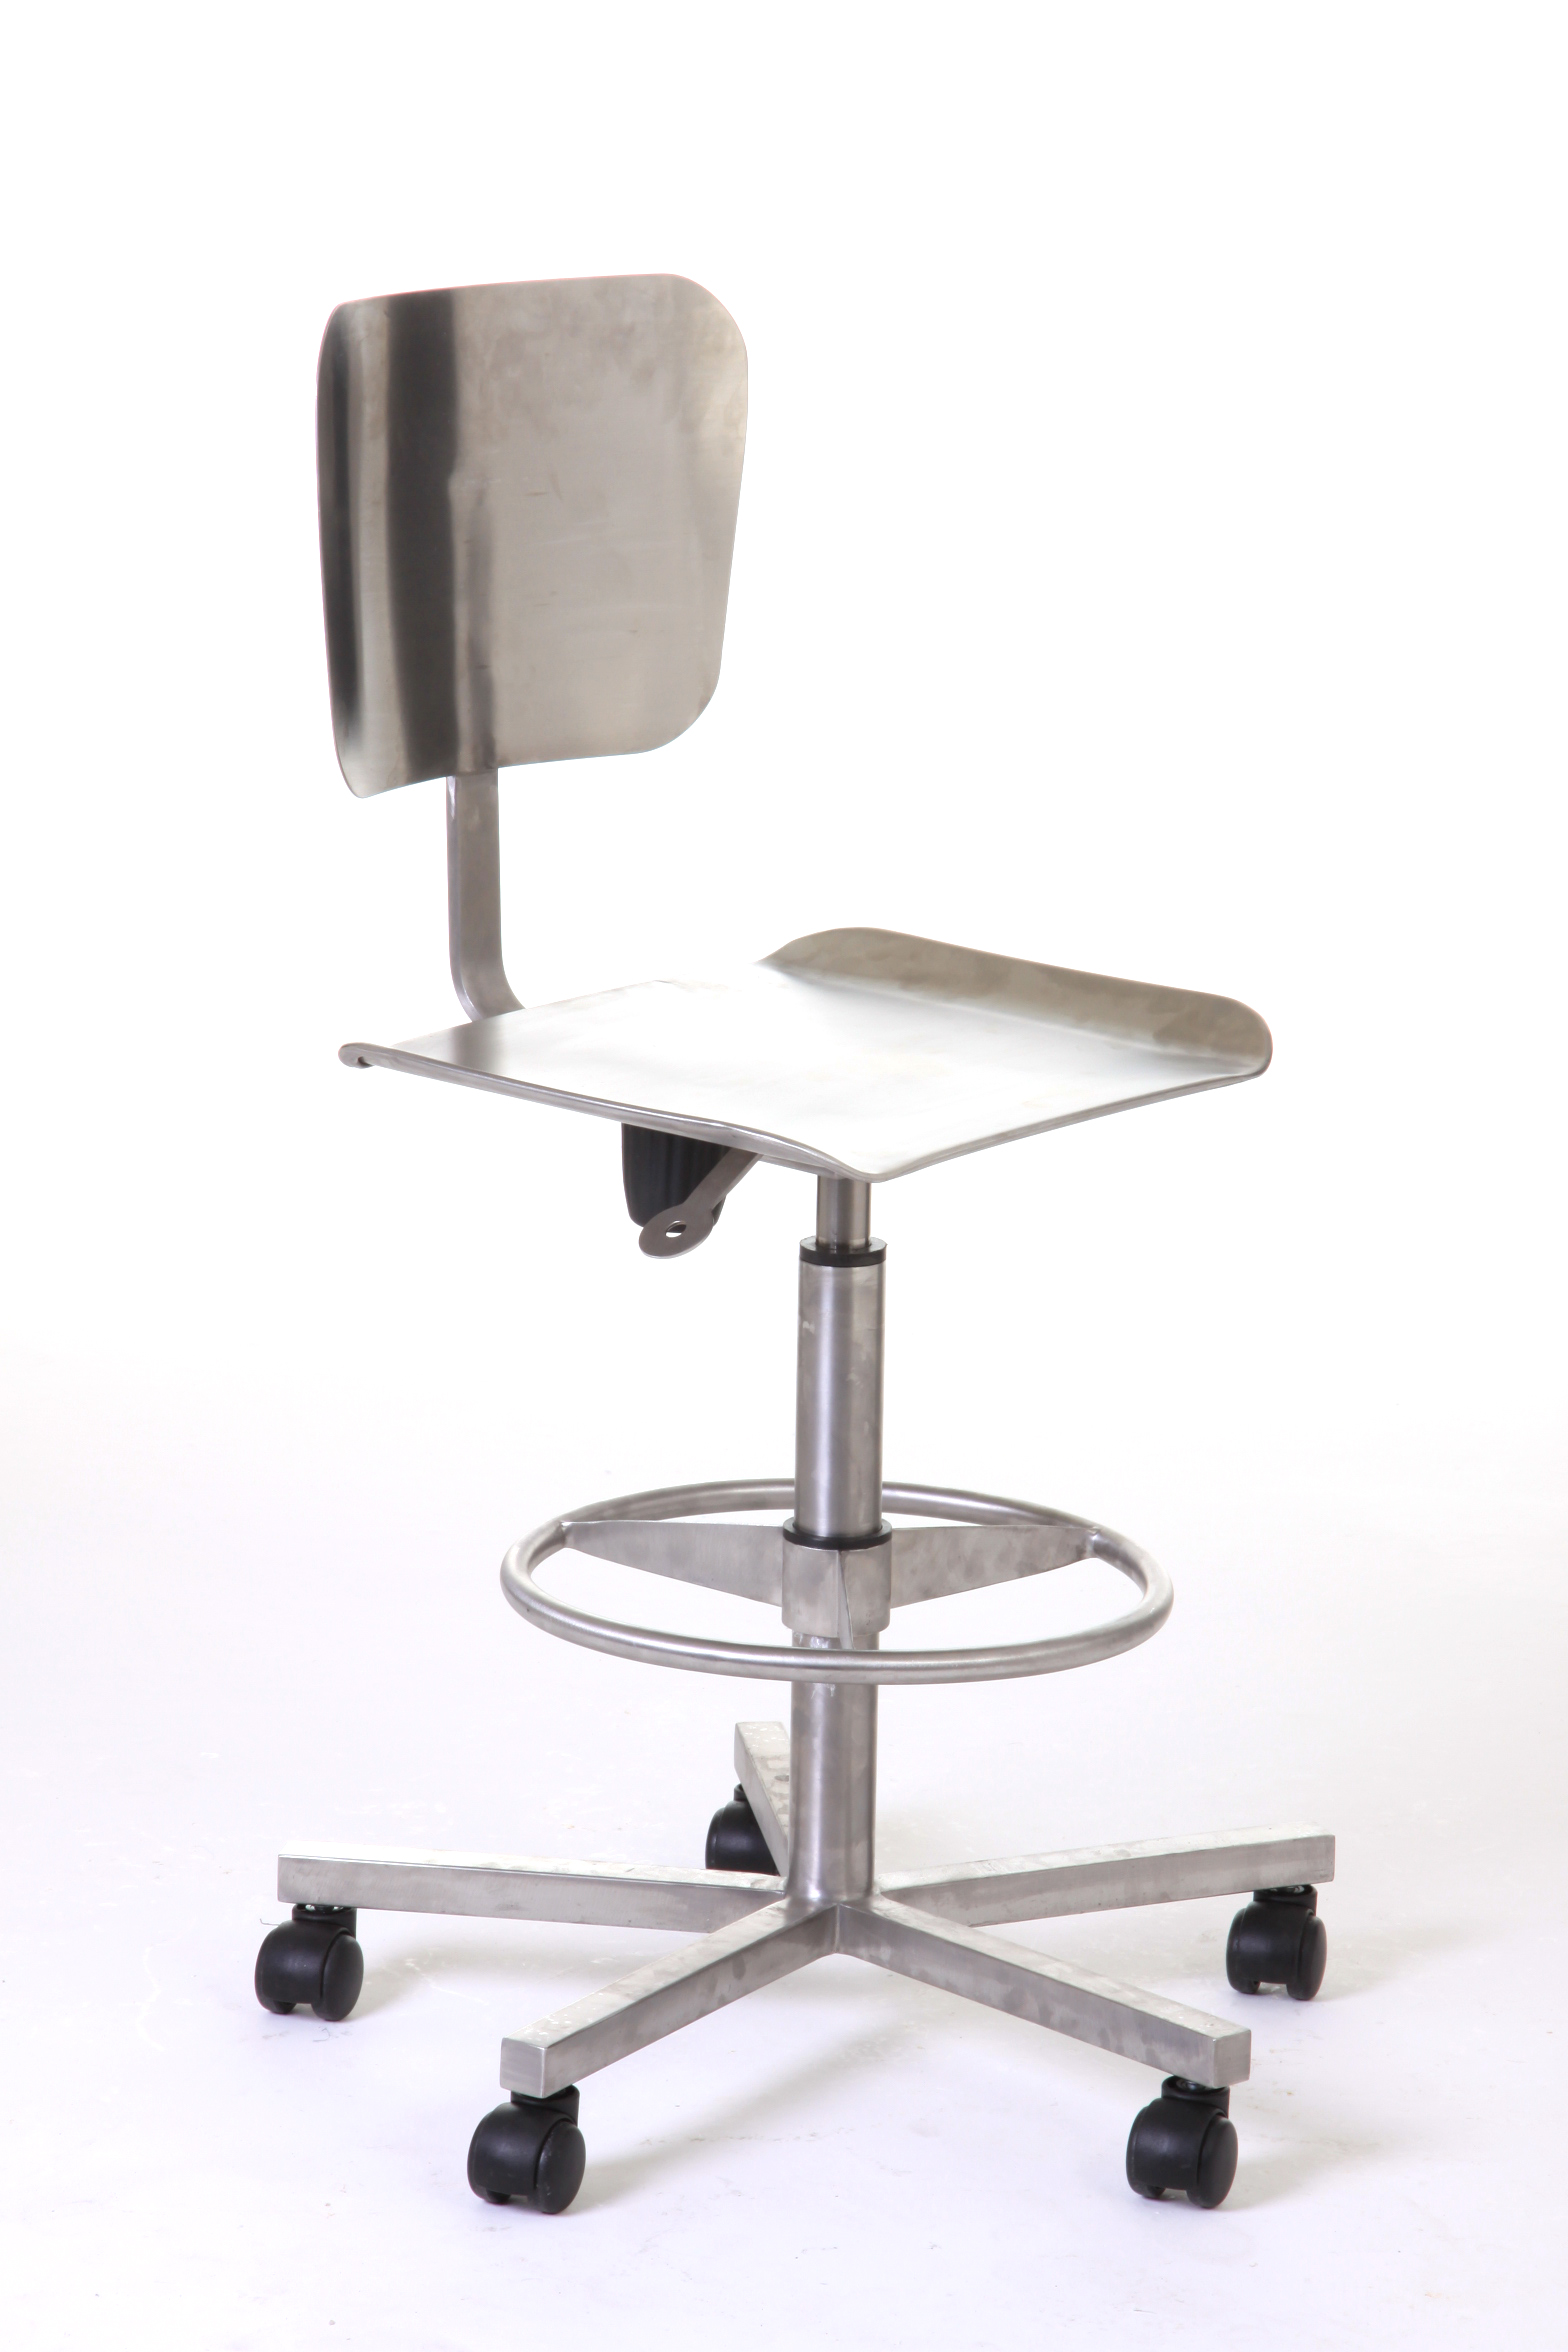 File:Stainless Steel Laboratory Pneumatic Chair With Wheels